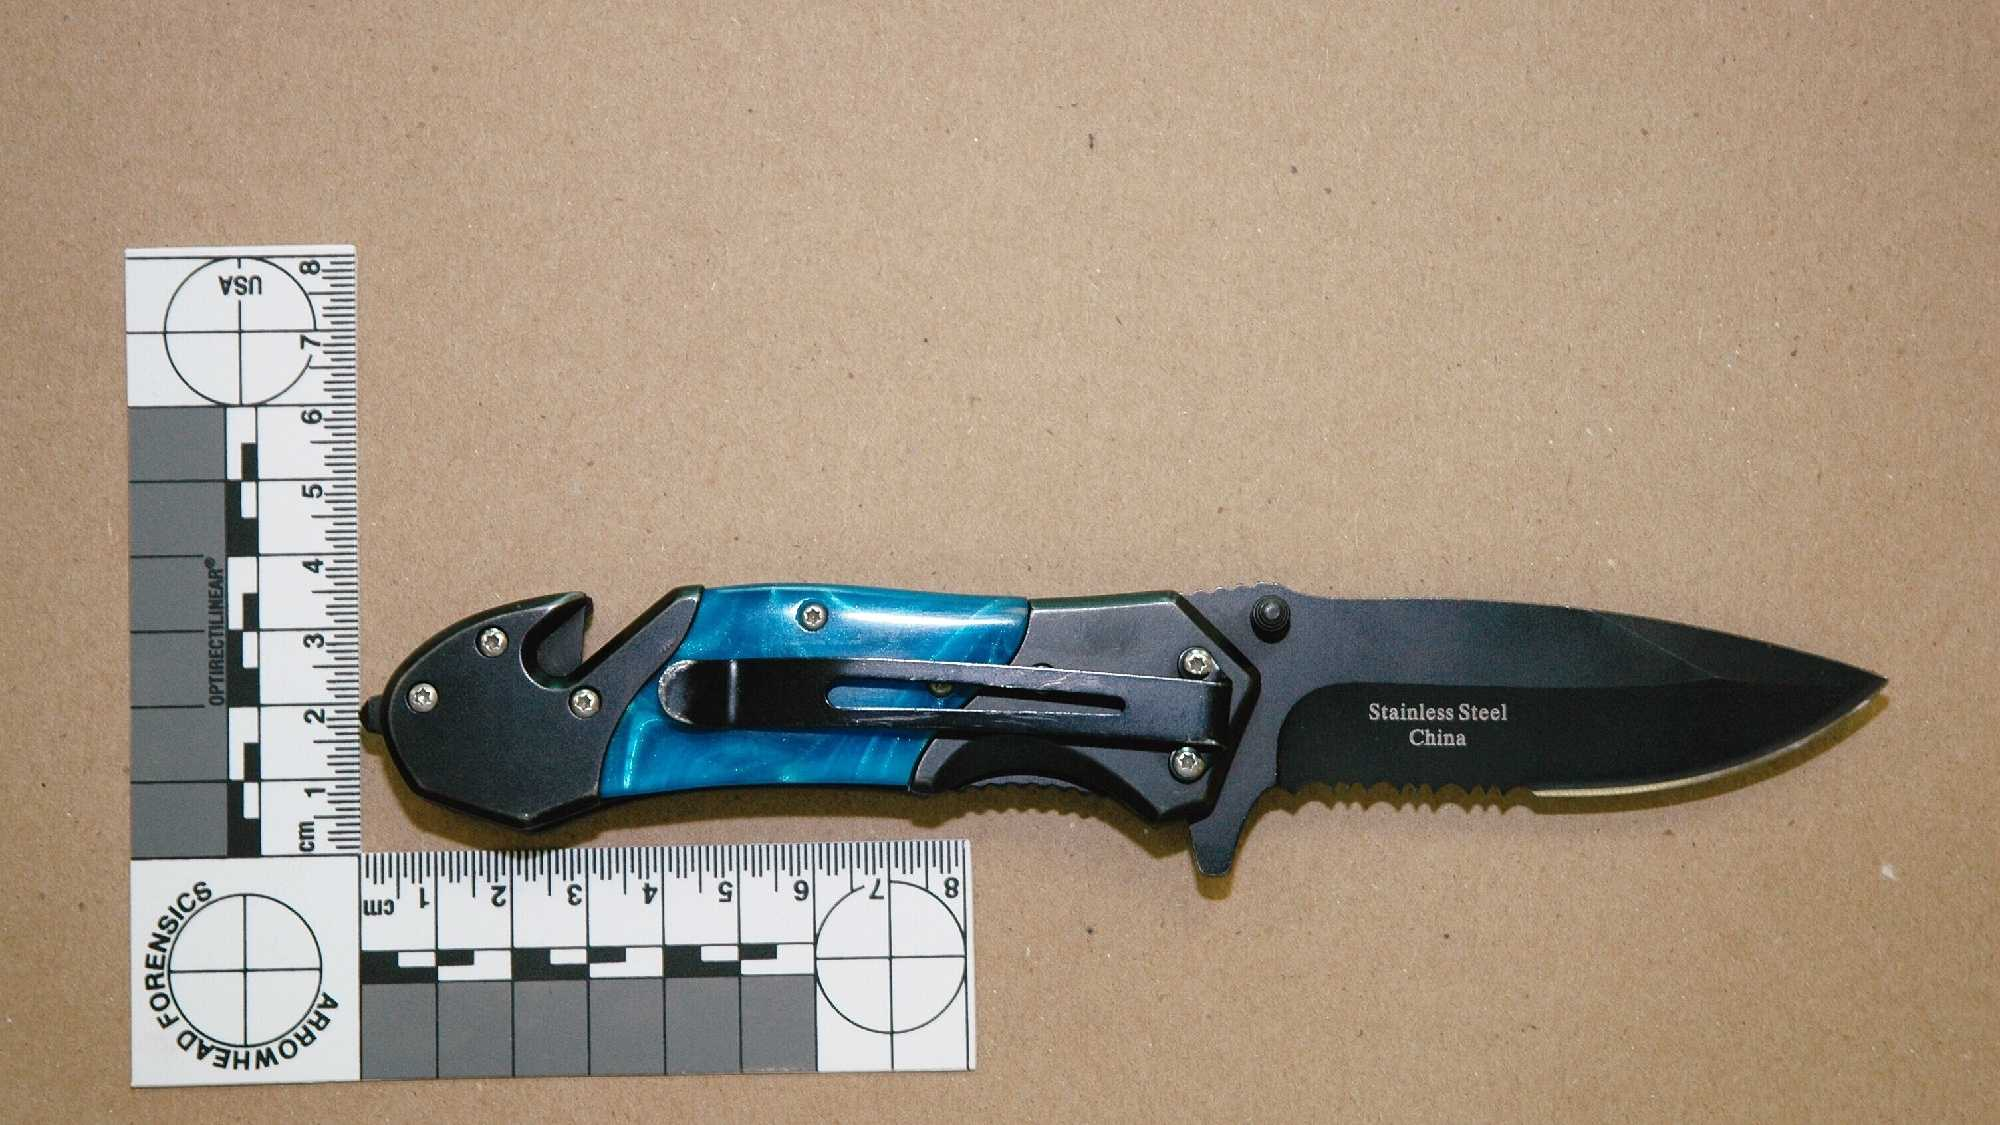 Photo of Freddie Gray's knife, obtained by the 11 News I-Team.